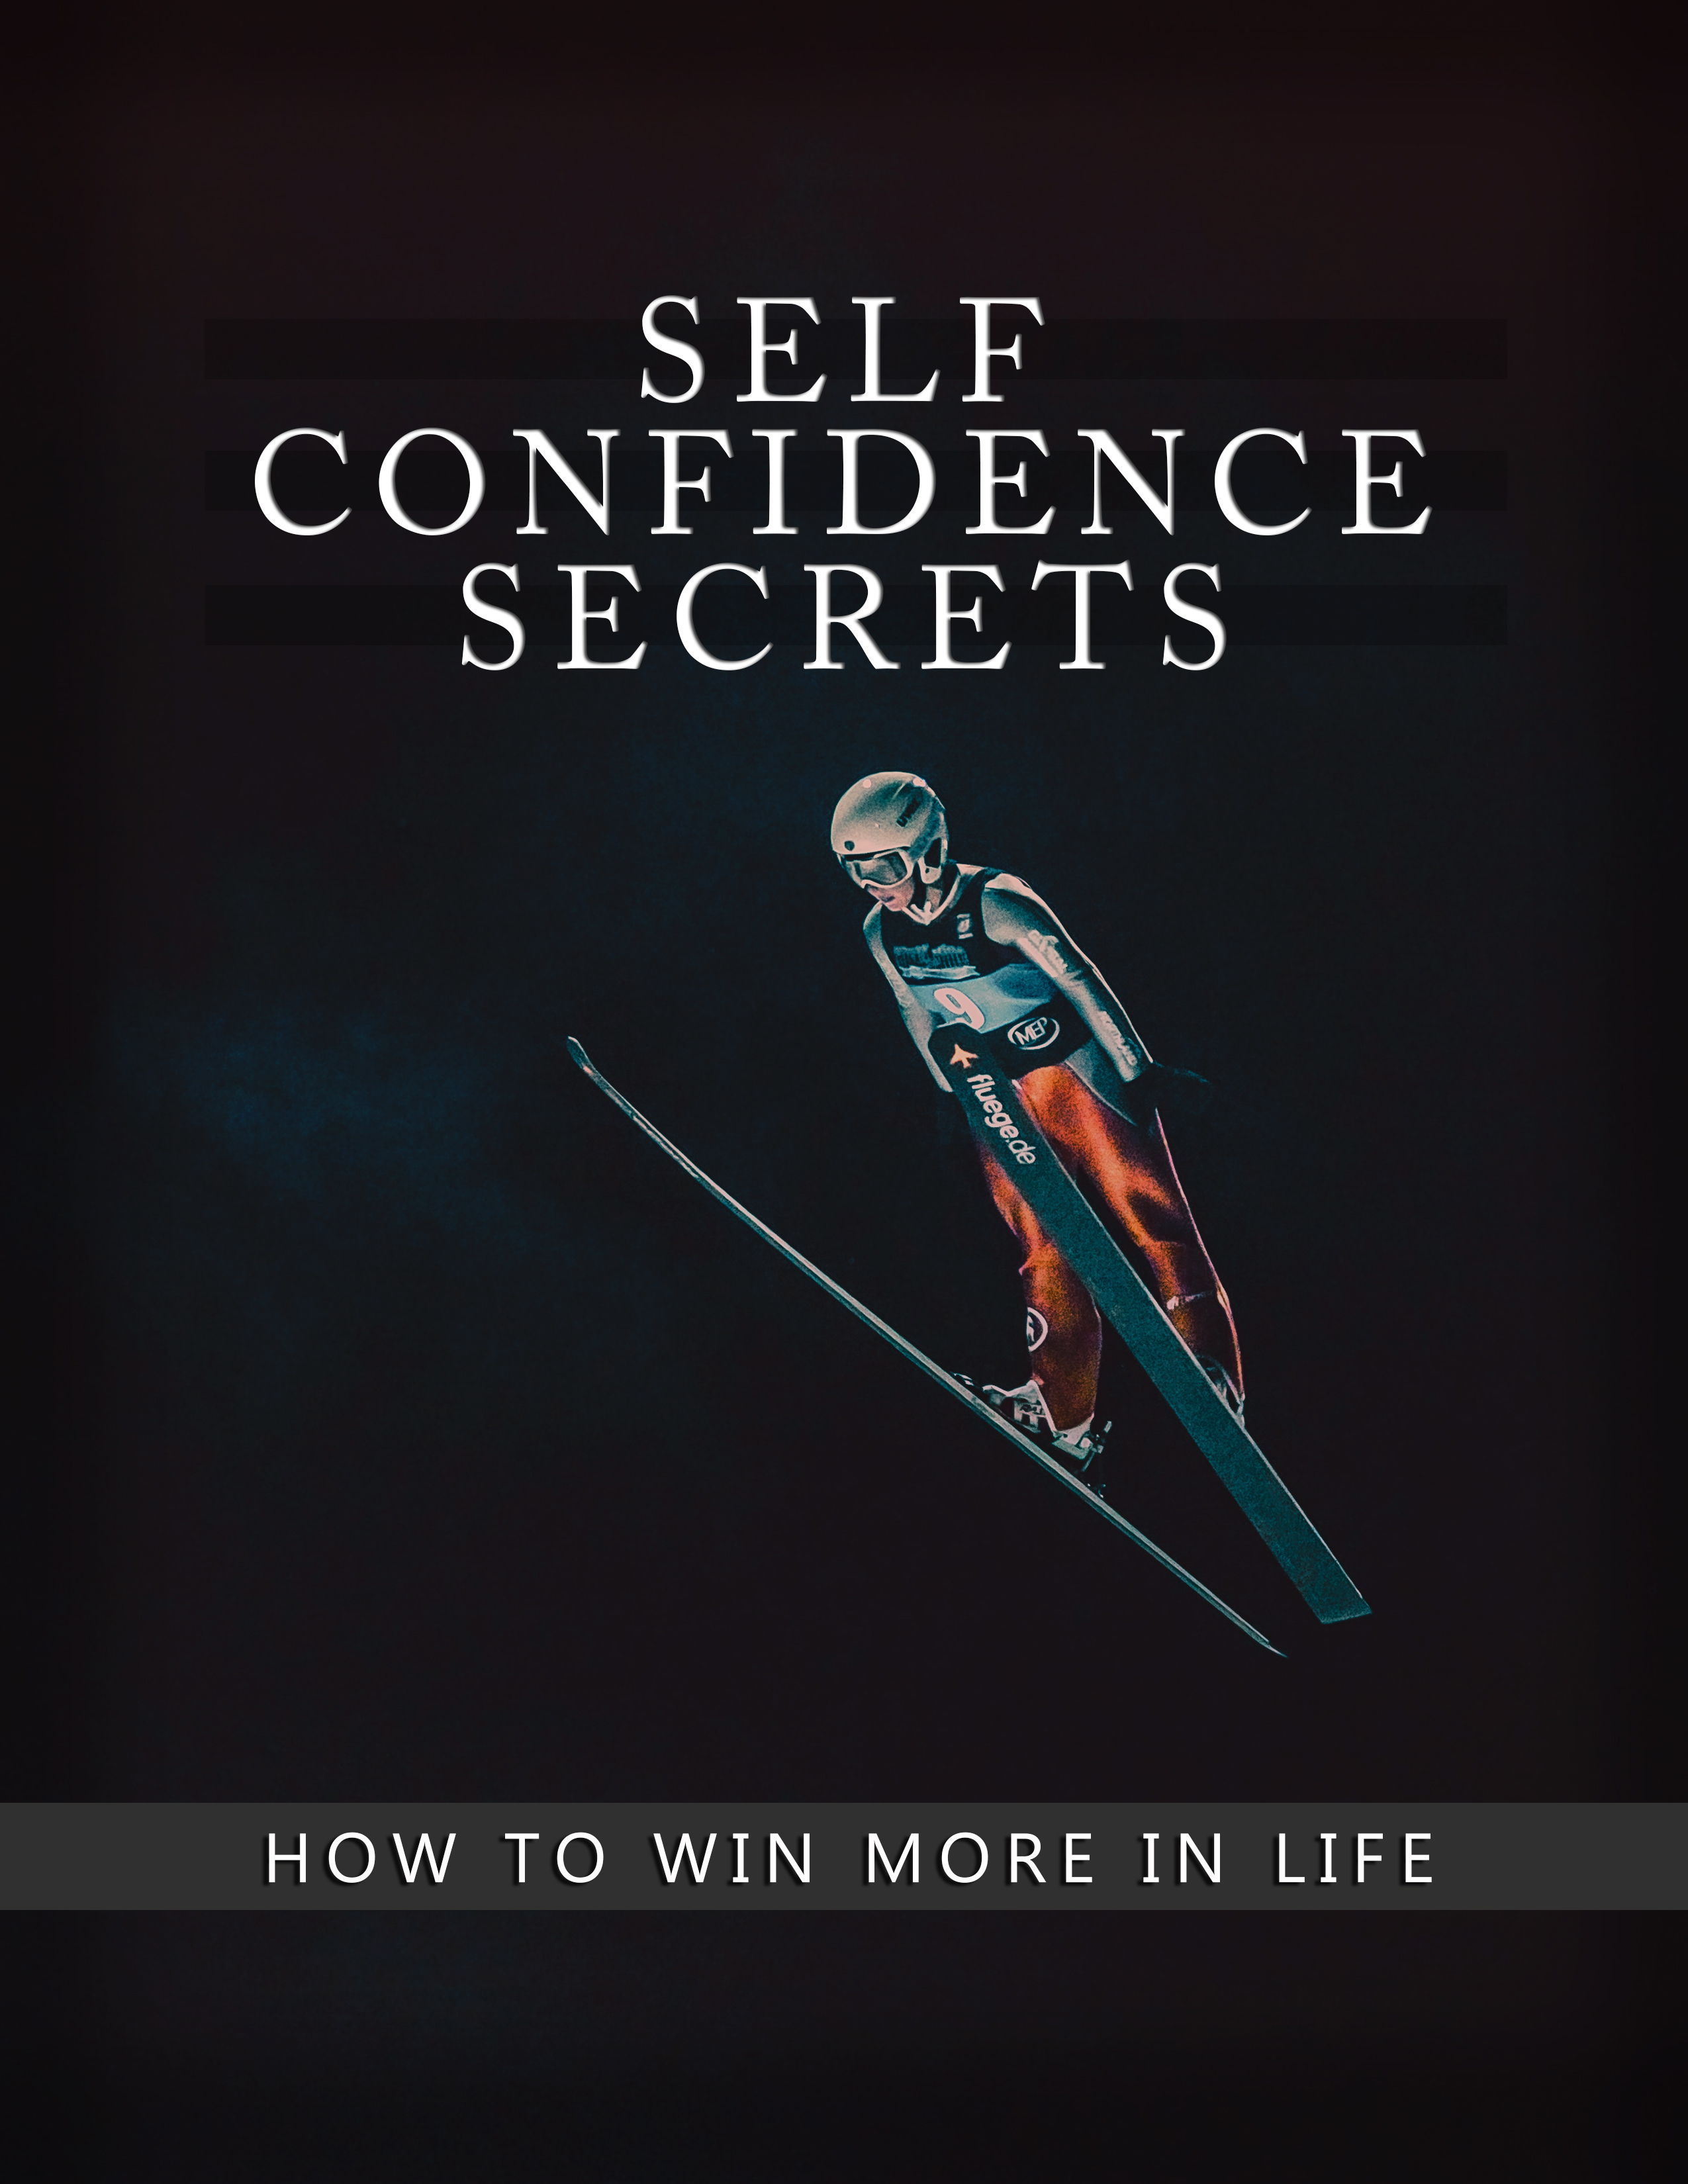 Self-Confidence Secrets (How To Win More In Life) Ebook's Book Image